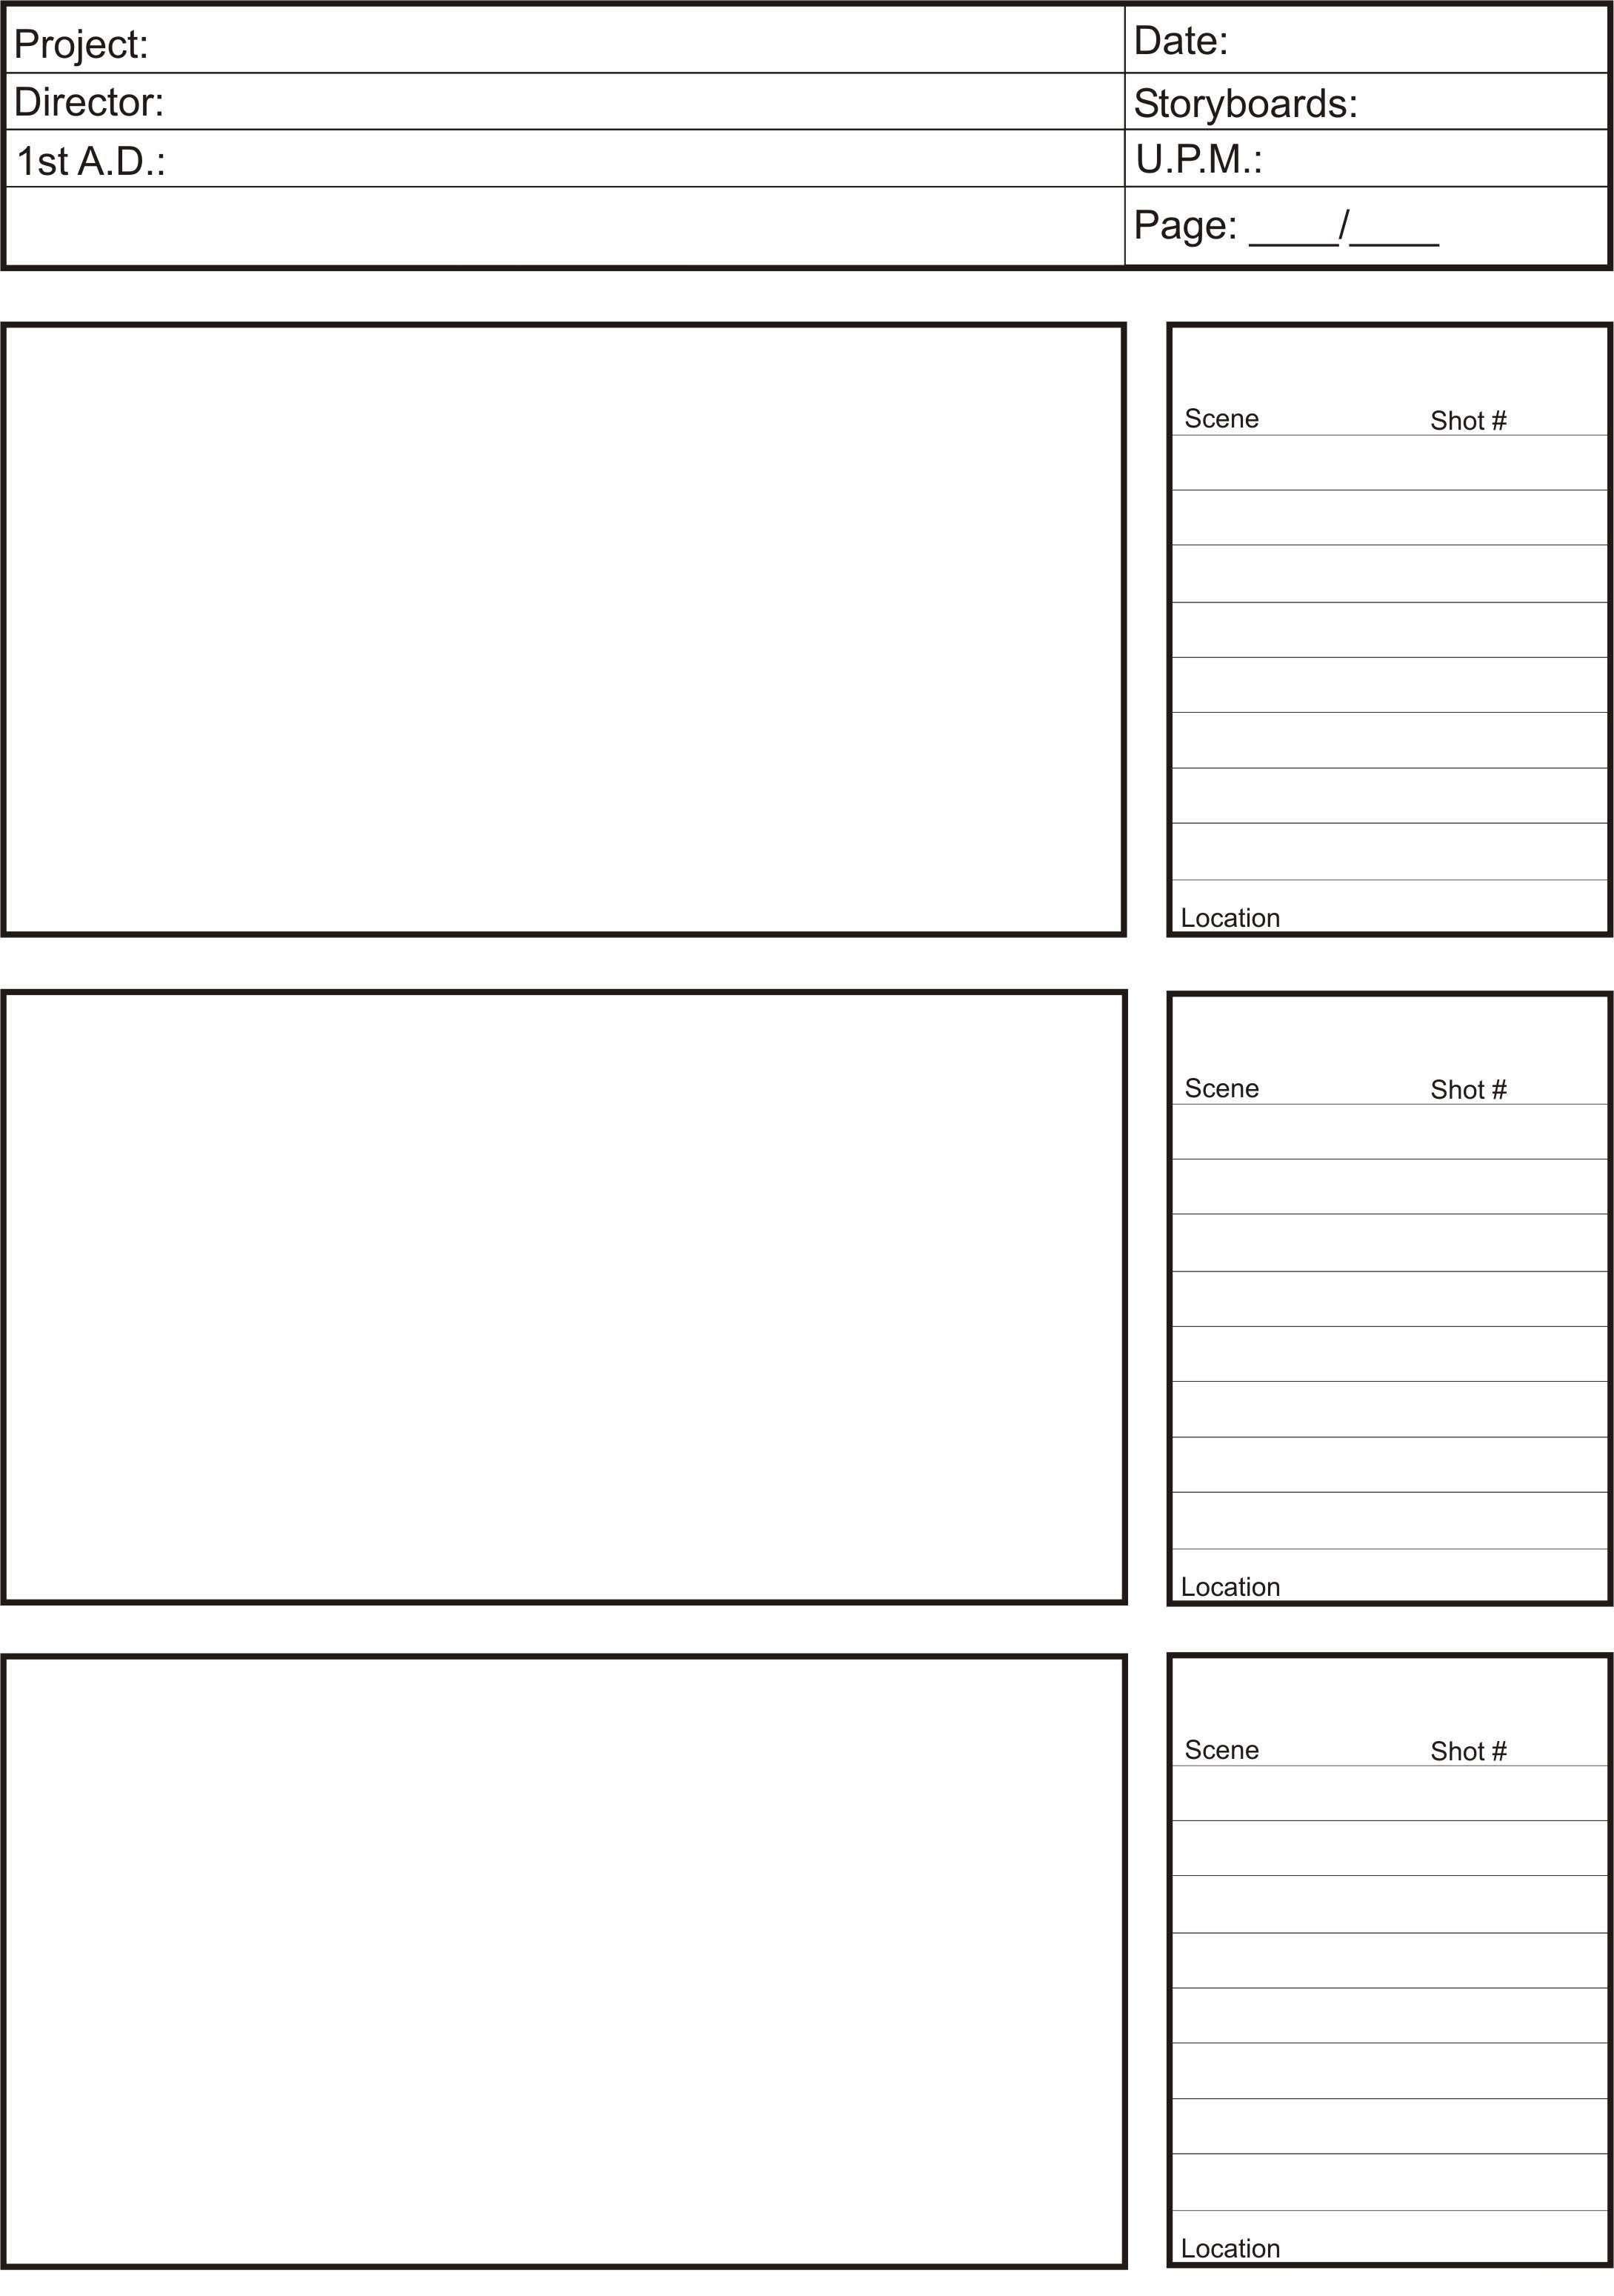 Excel Film Budget Template. I use an excel file for creating my film's ...